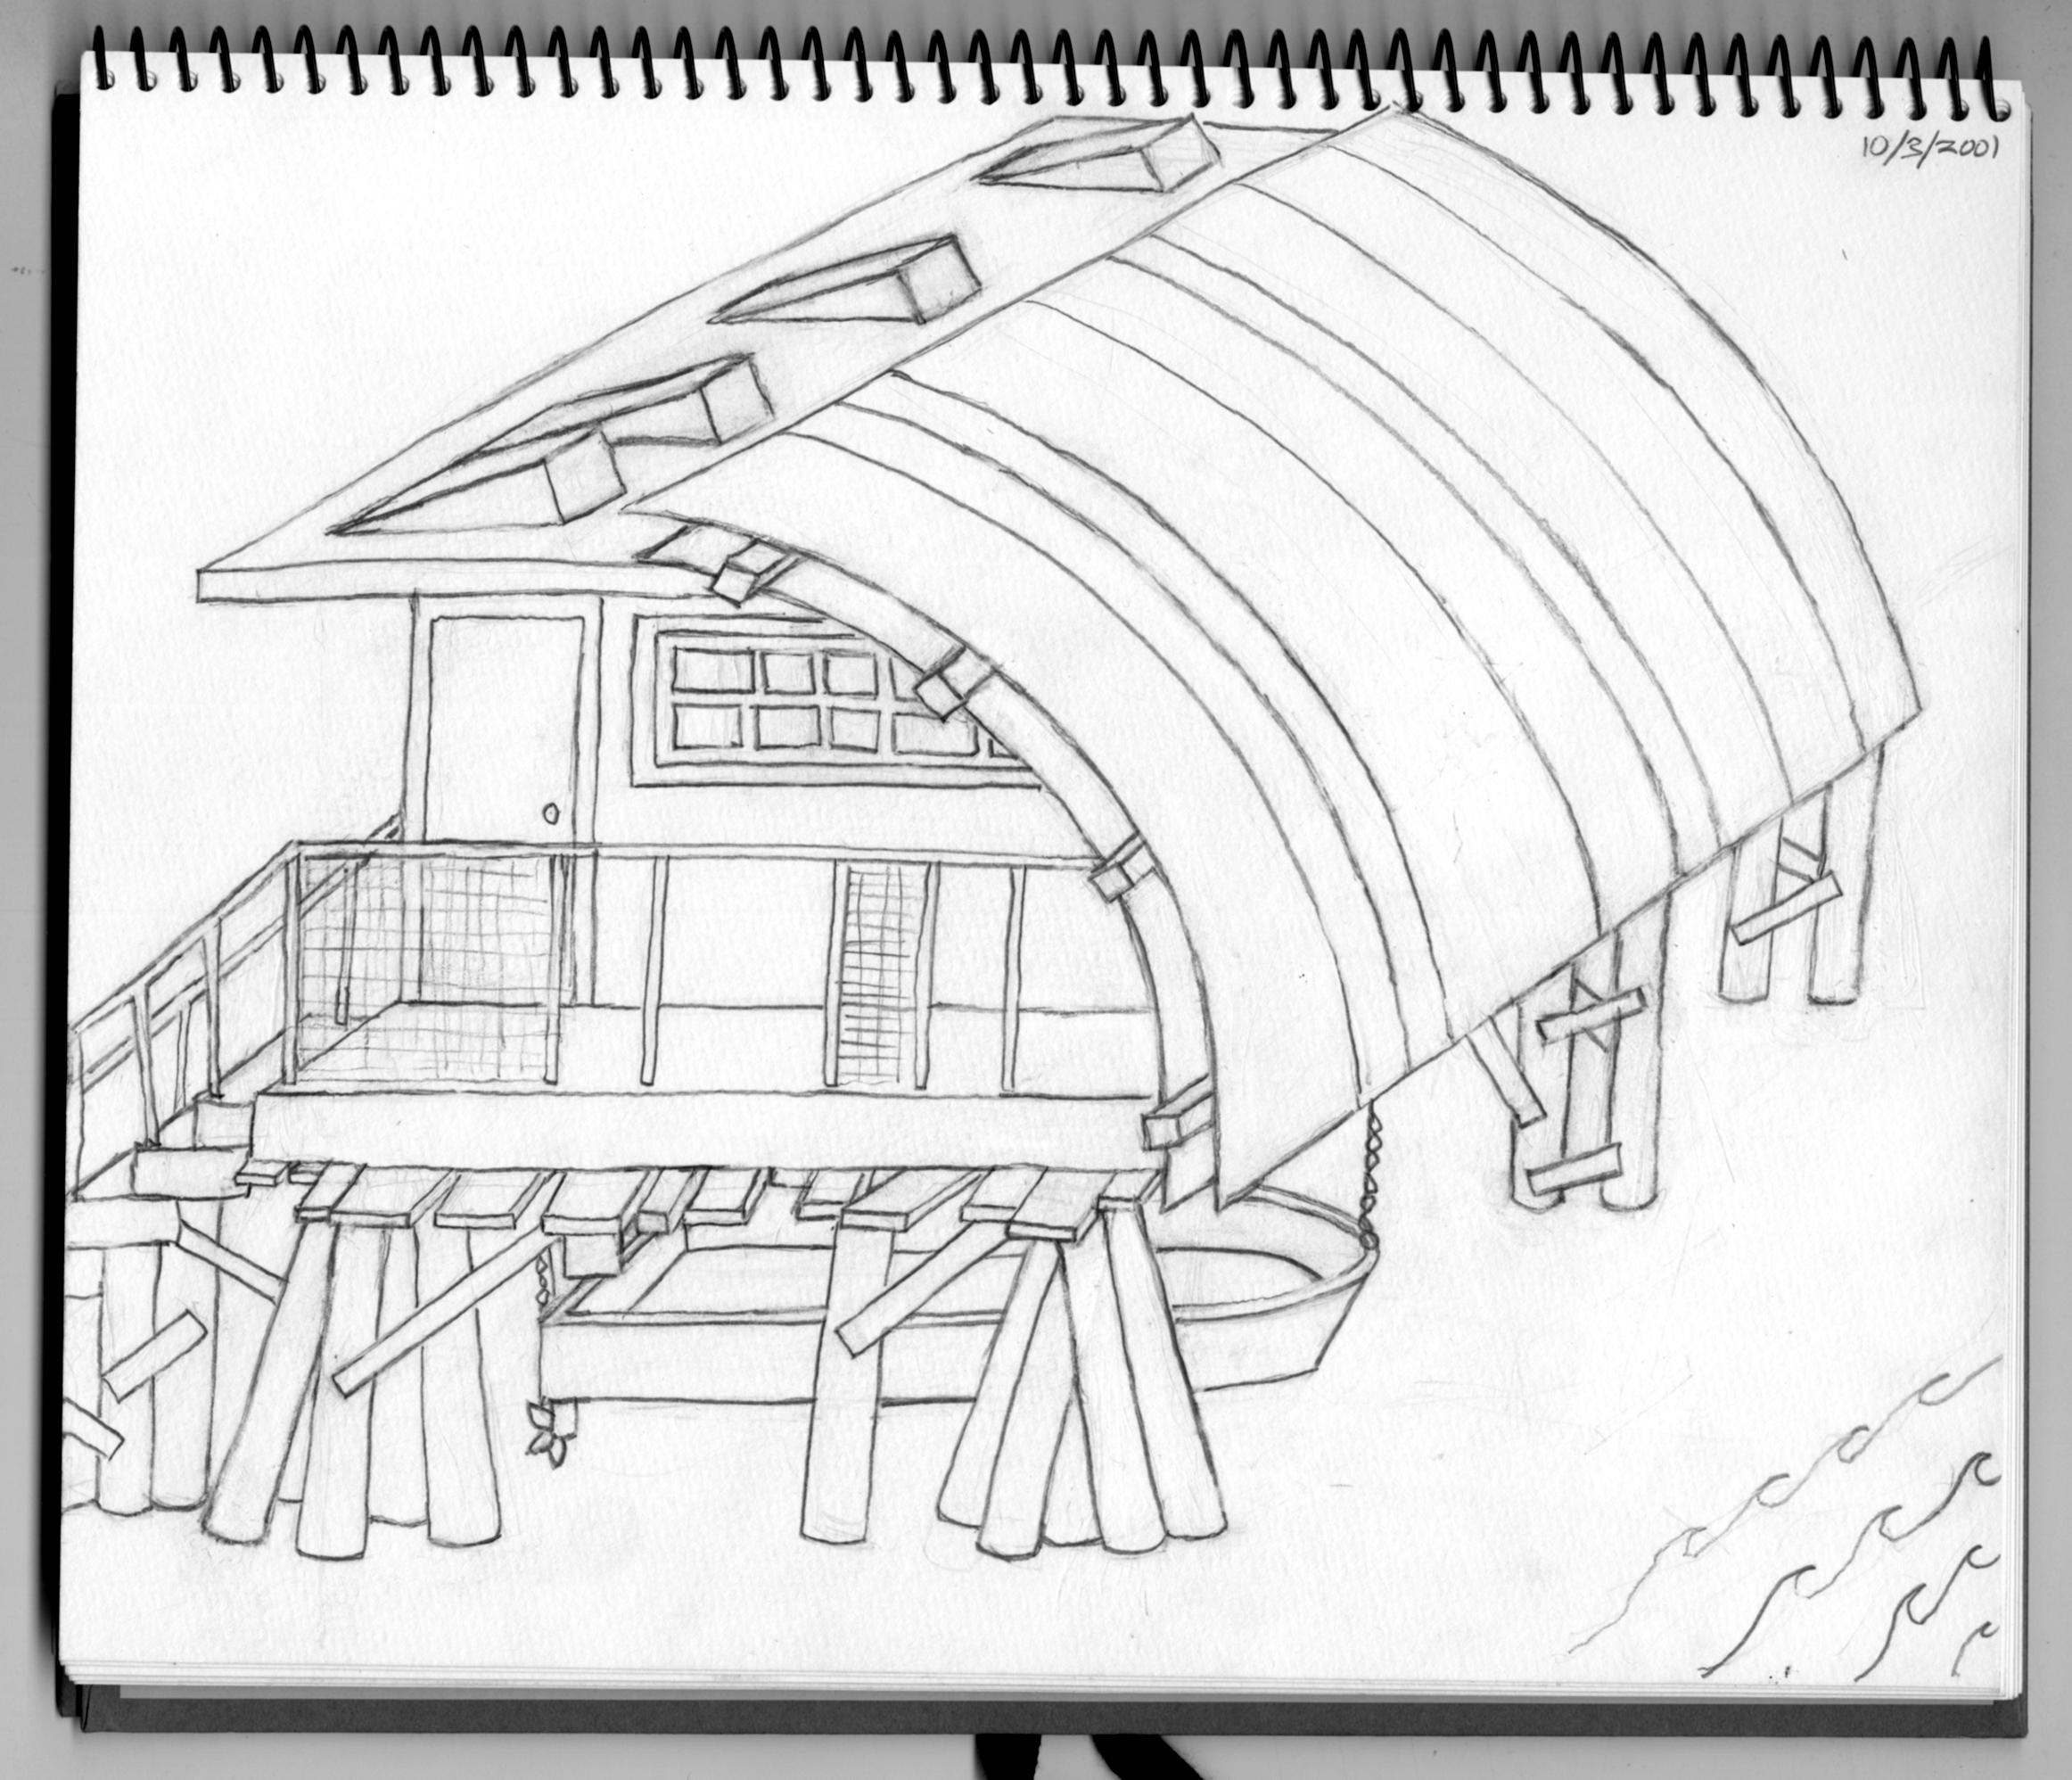 Hurricane House sketch (2001)